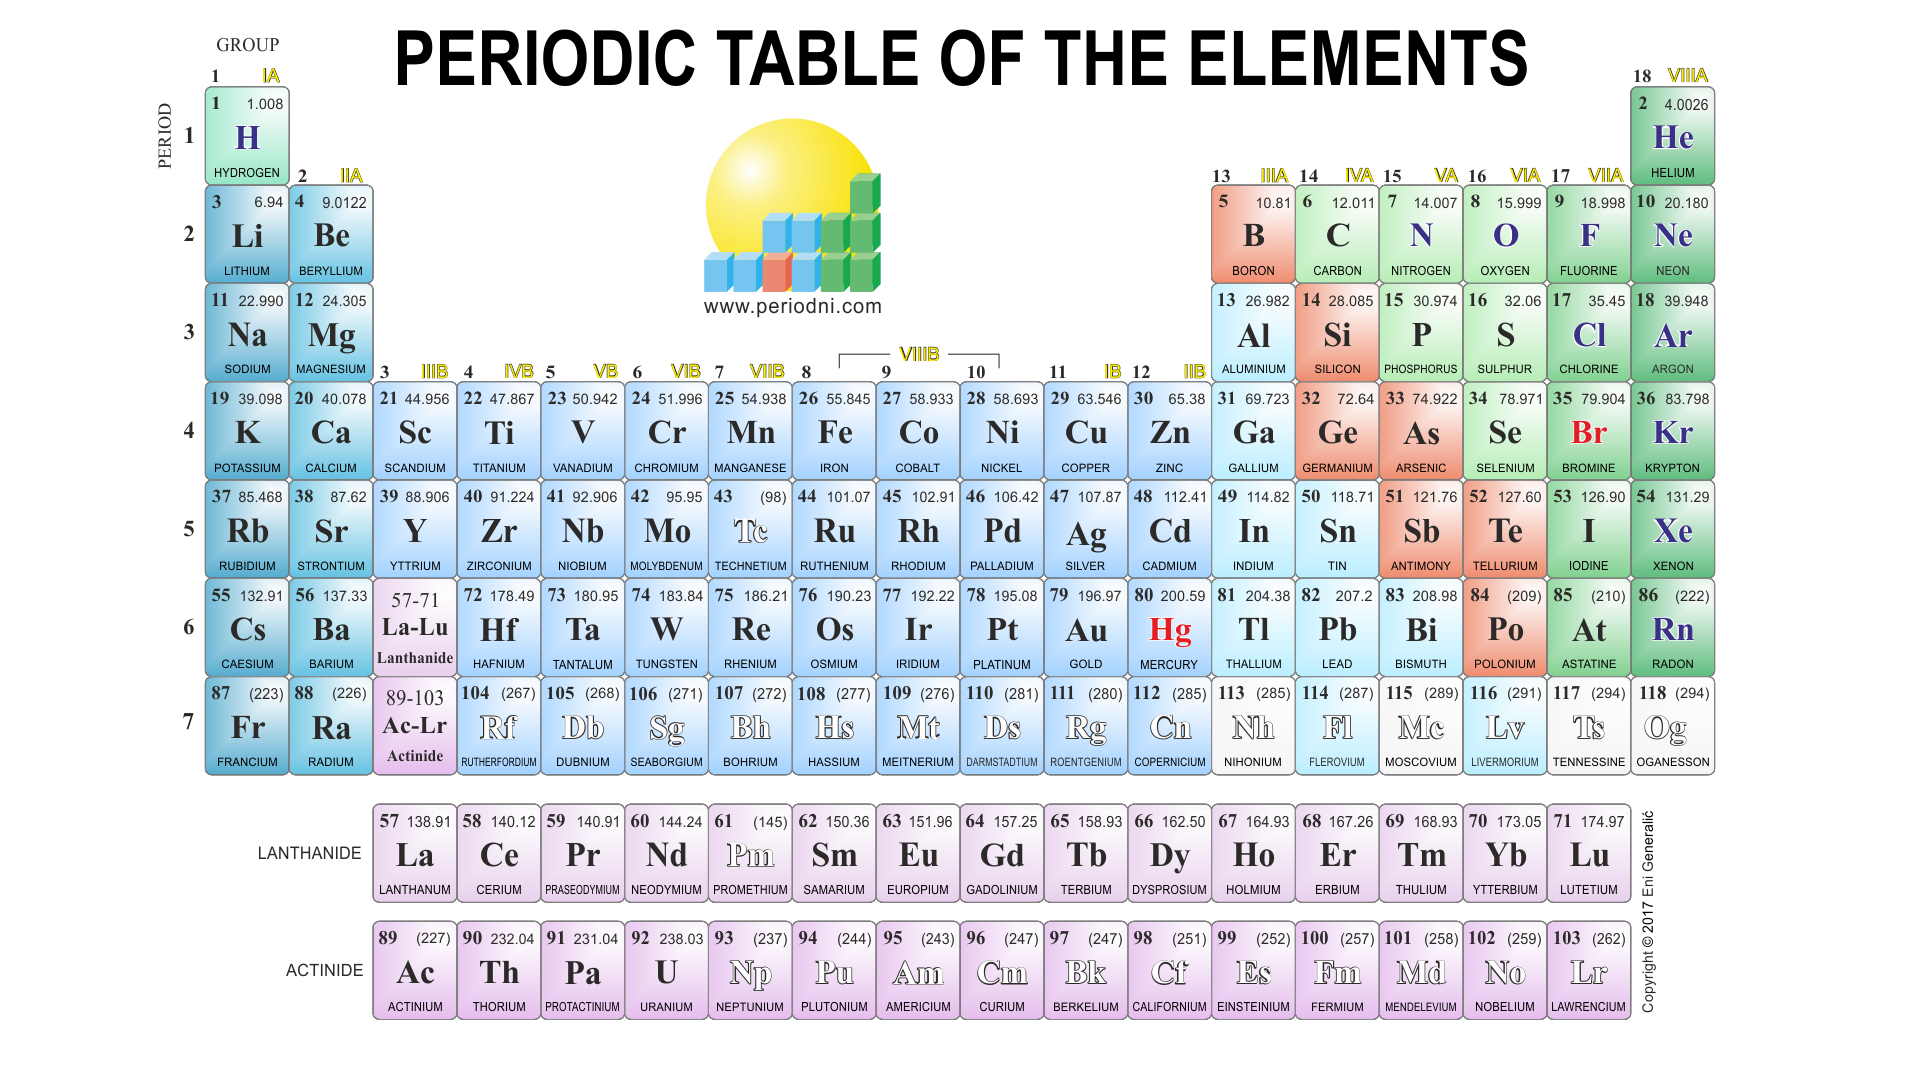 Chemistry images gallery for 10 elements of the periodic table